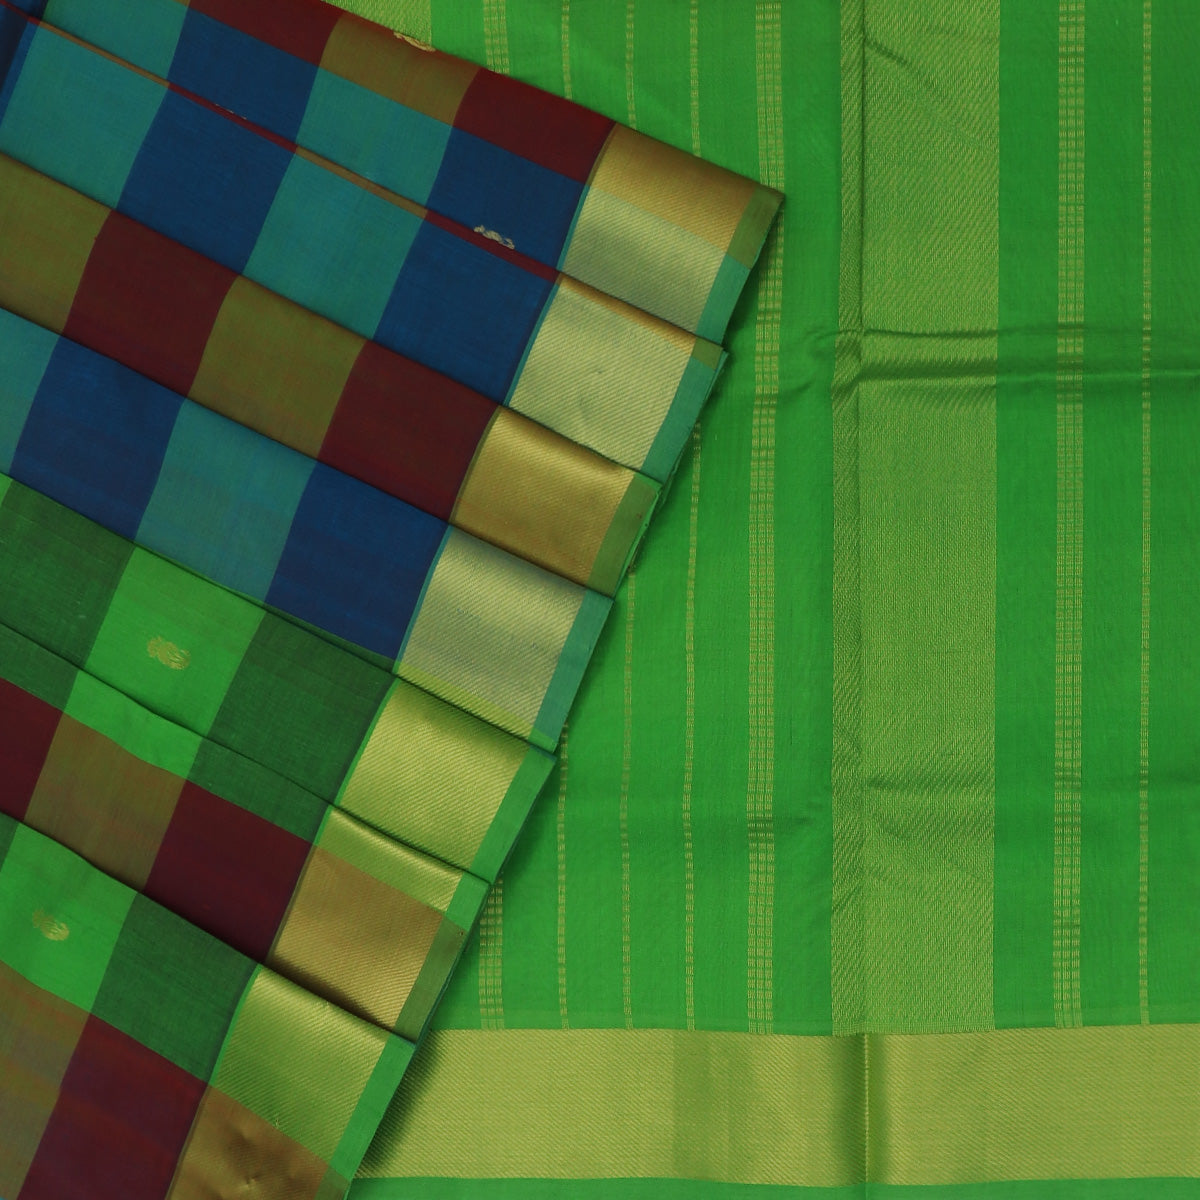 Silk Cotton Saree-Parrot Green and Peacock Blue Paalum pazham with butta and Bavanji zari border for Rs.Rs. 4030.00 | Silk Cotton Sarees by Prashanti Sarees